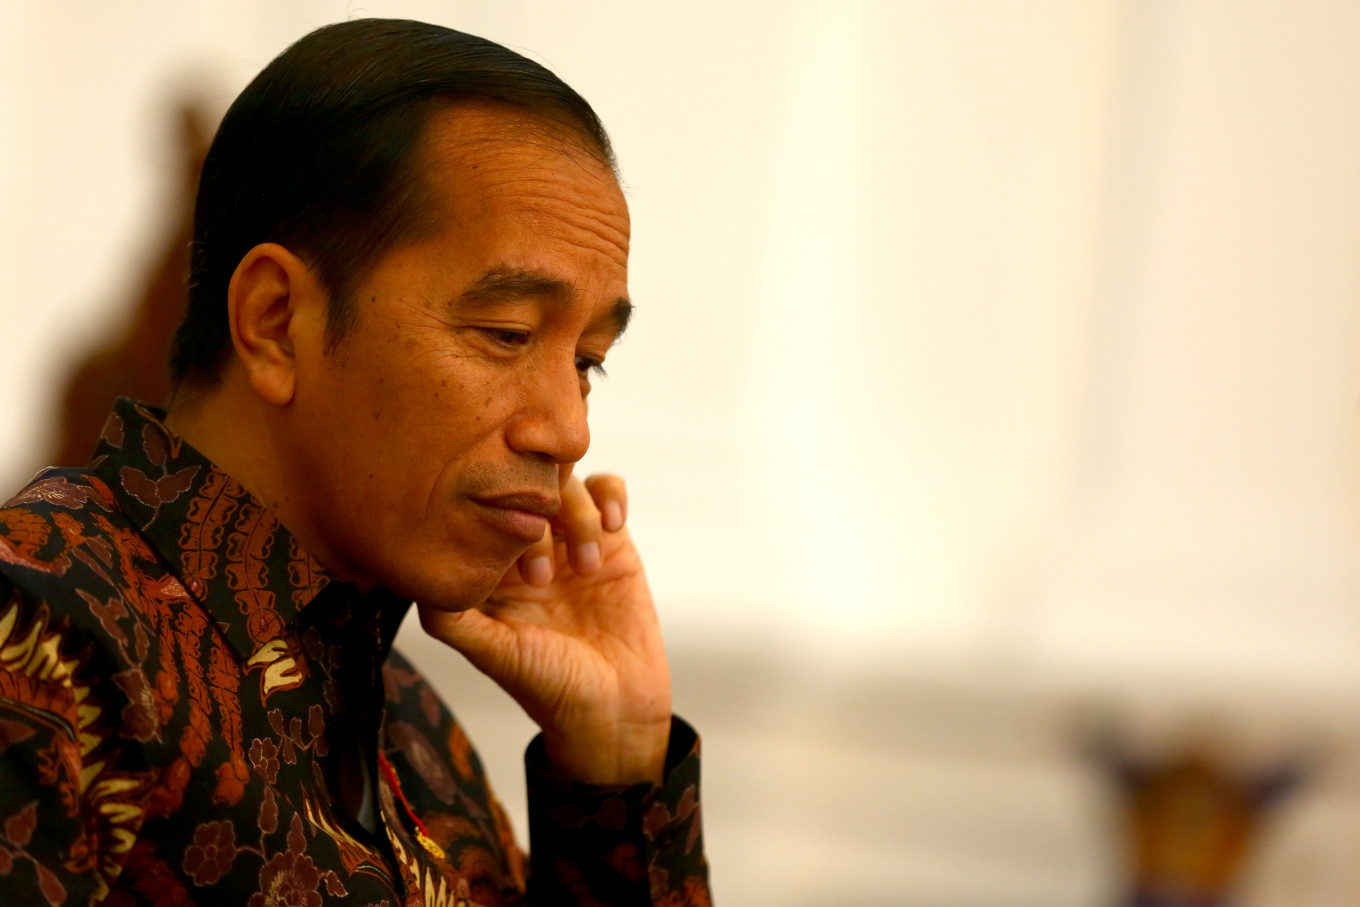 Jokowi wants more microcredit disbursements to productive sectors